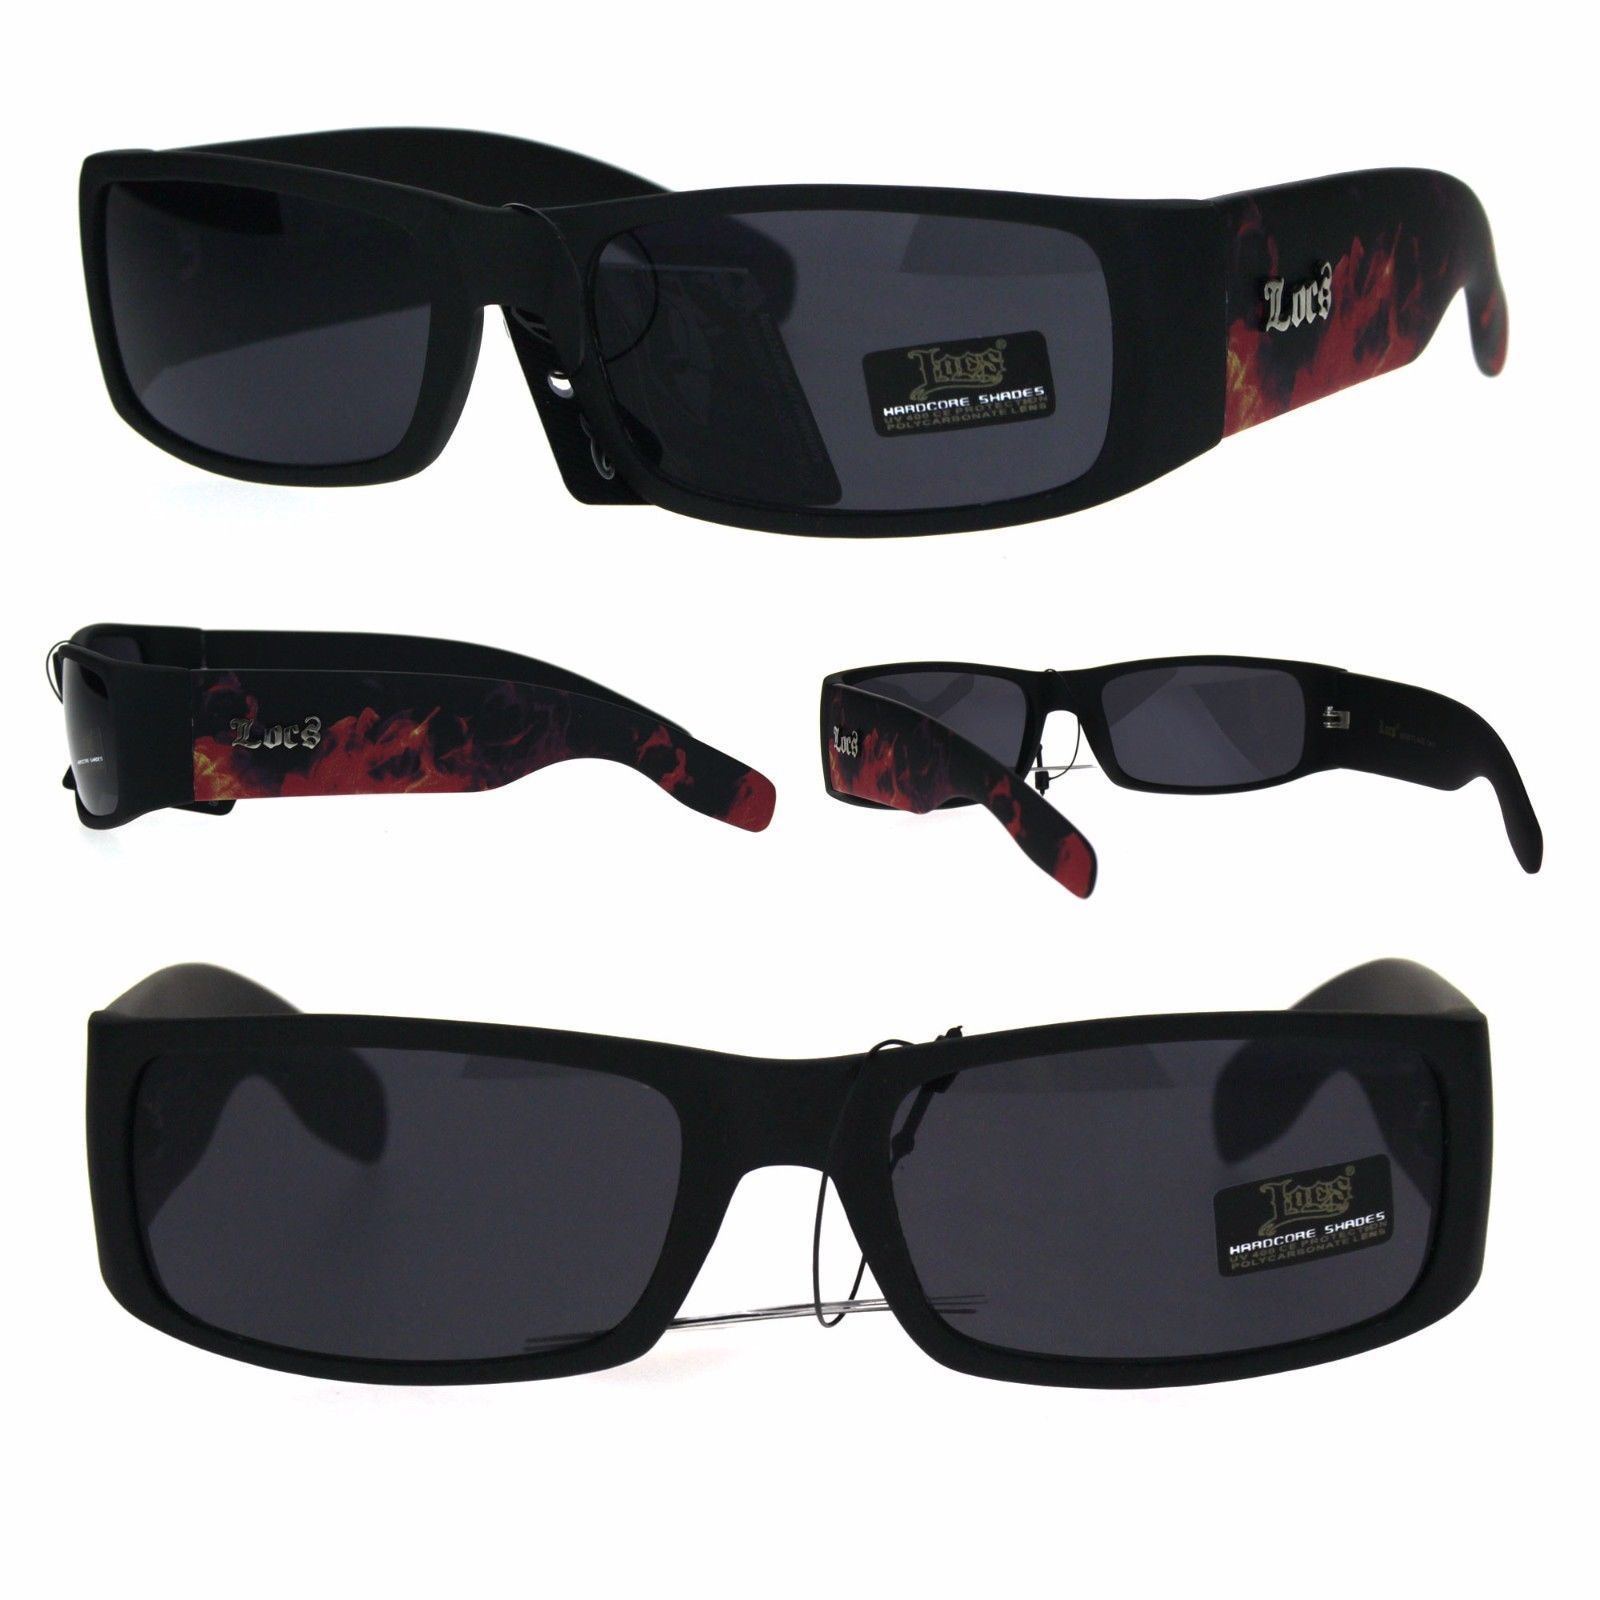 940d8d18b865 S l1600. S l1600. Previous. Locs Red Fire Flame Print Arm Thick Temple  Black Plastic Gangster Sunglasses